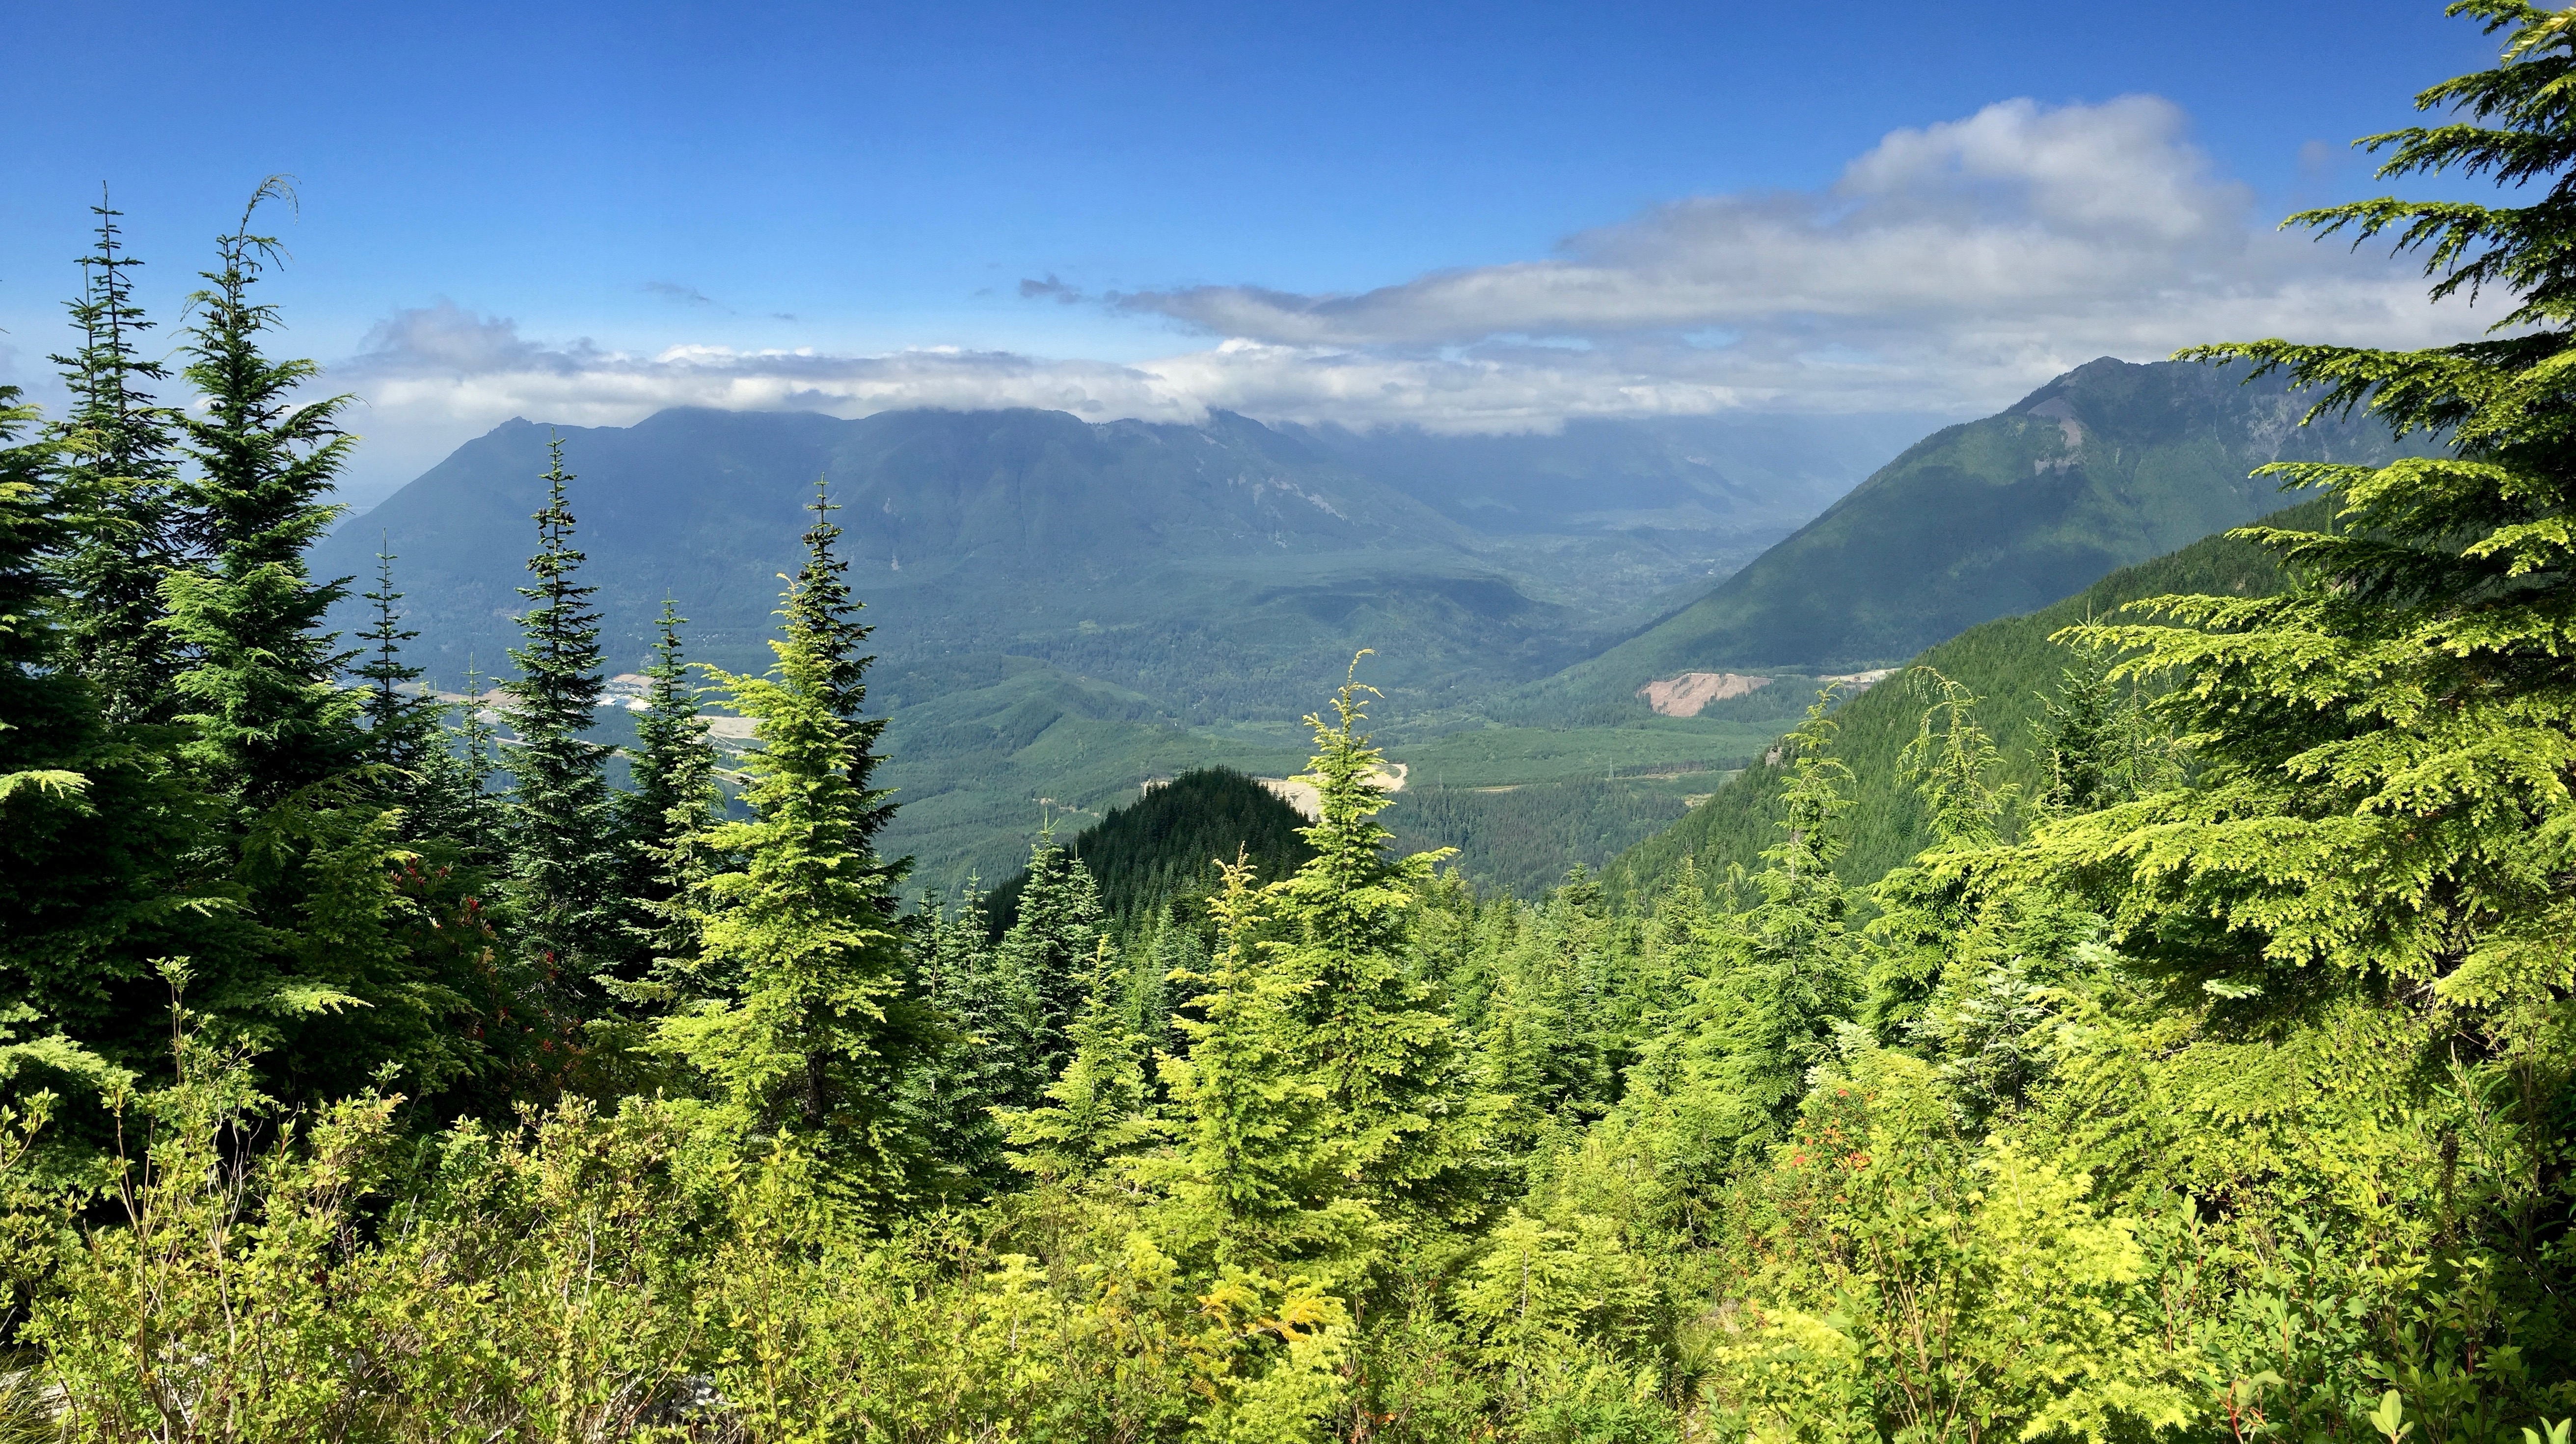 Mount Washington's northern view scans the ridge comprising Mount Si, Mount Teneriffe, and Green Mountain (here, in the left and center background) and Mail Box Peak rising at the juncture of the South and Middle Fork Snoqualmie river valleys (here, in the right middleground). Mount Washington Trail, July 30, 2016.